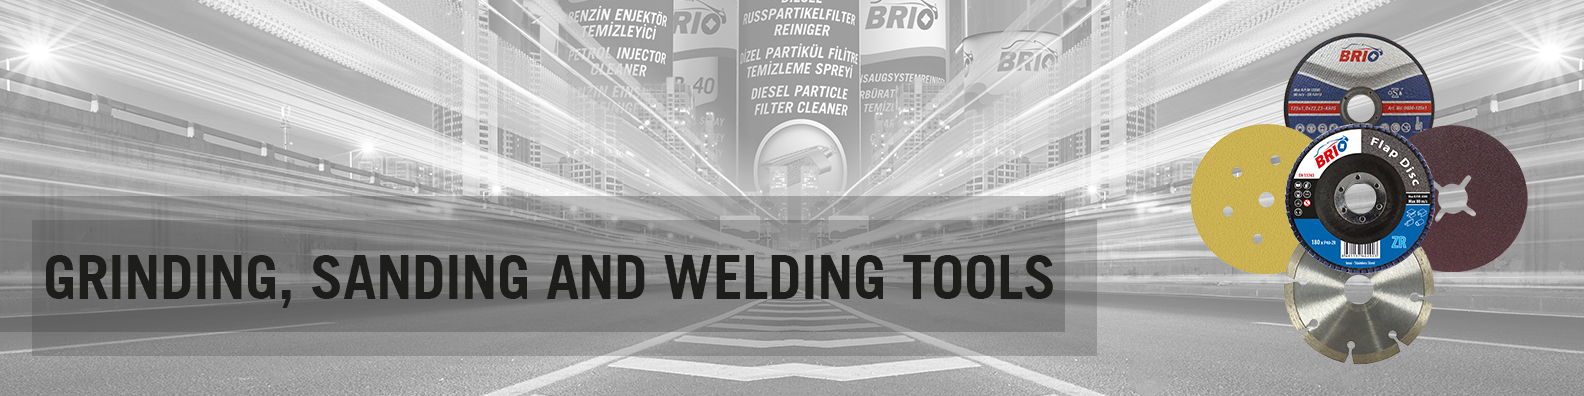 BRIO Europe Grinding Sanding and Welding Tools